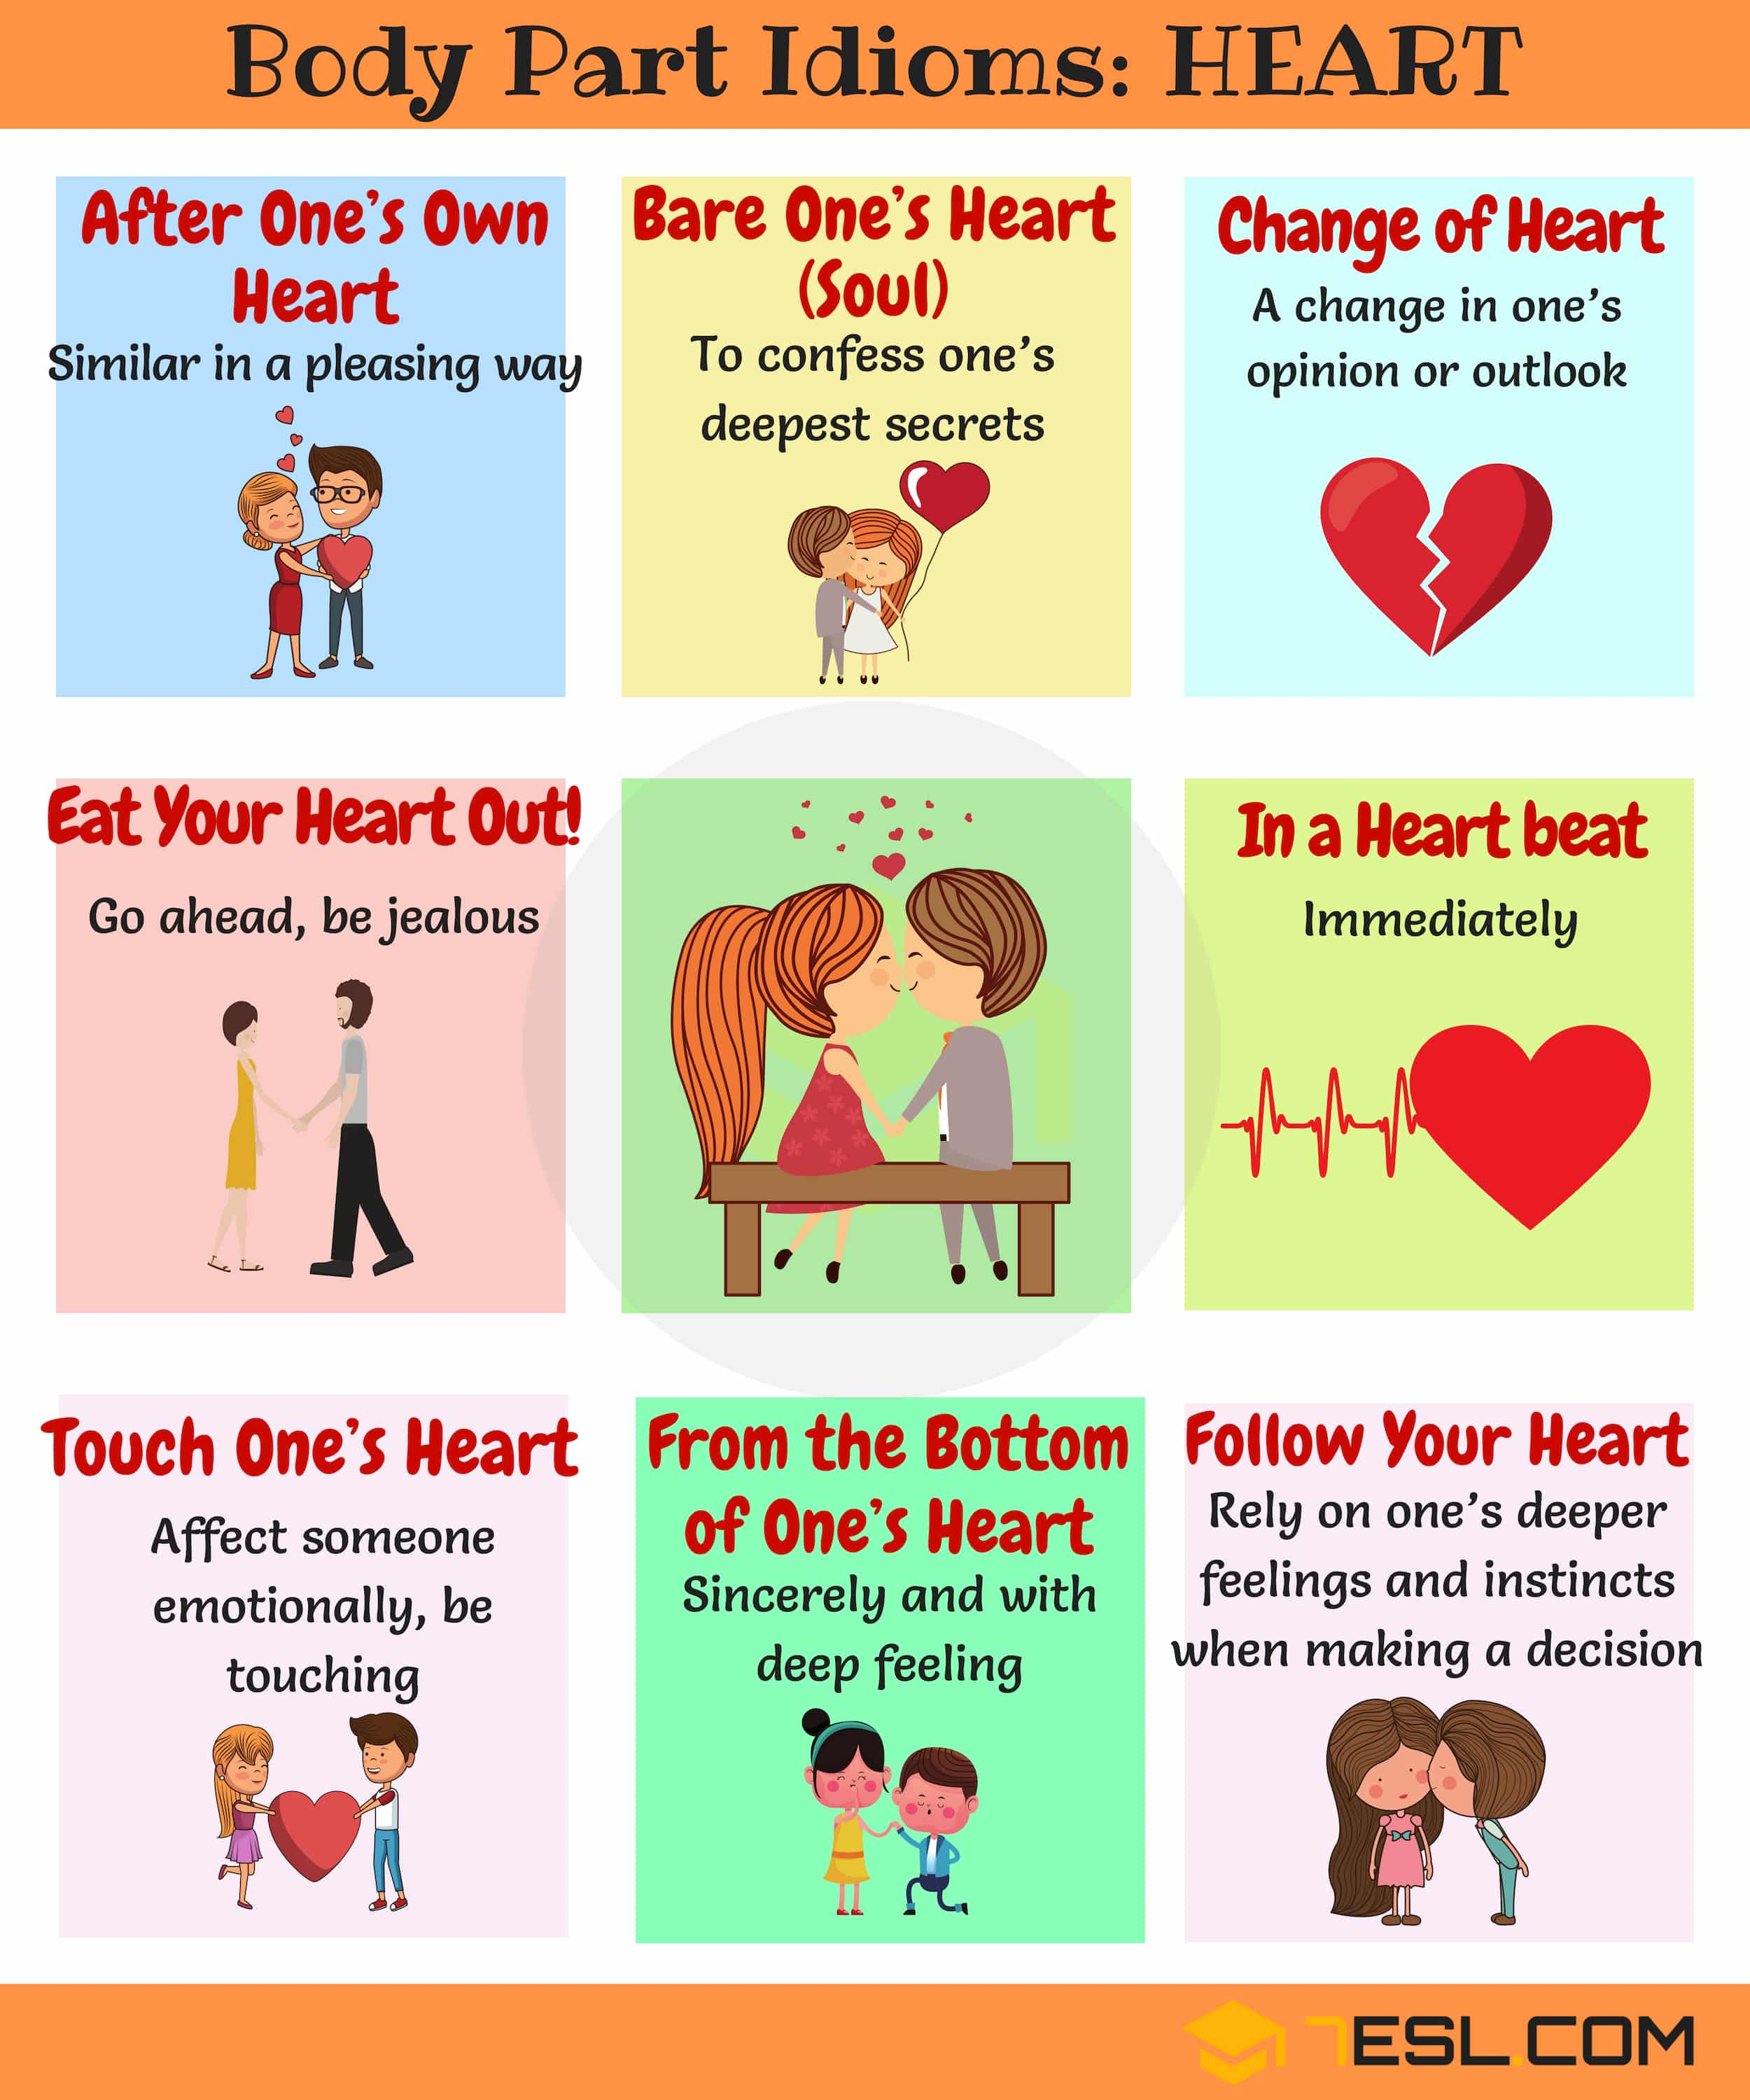 HEART Idioms Useful Heart Idioms Amp Sayings In English 7 E S L